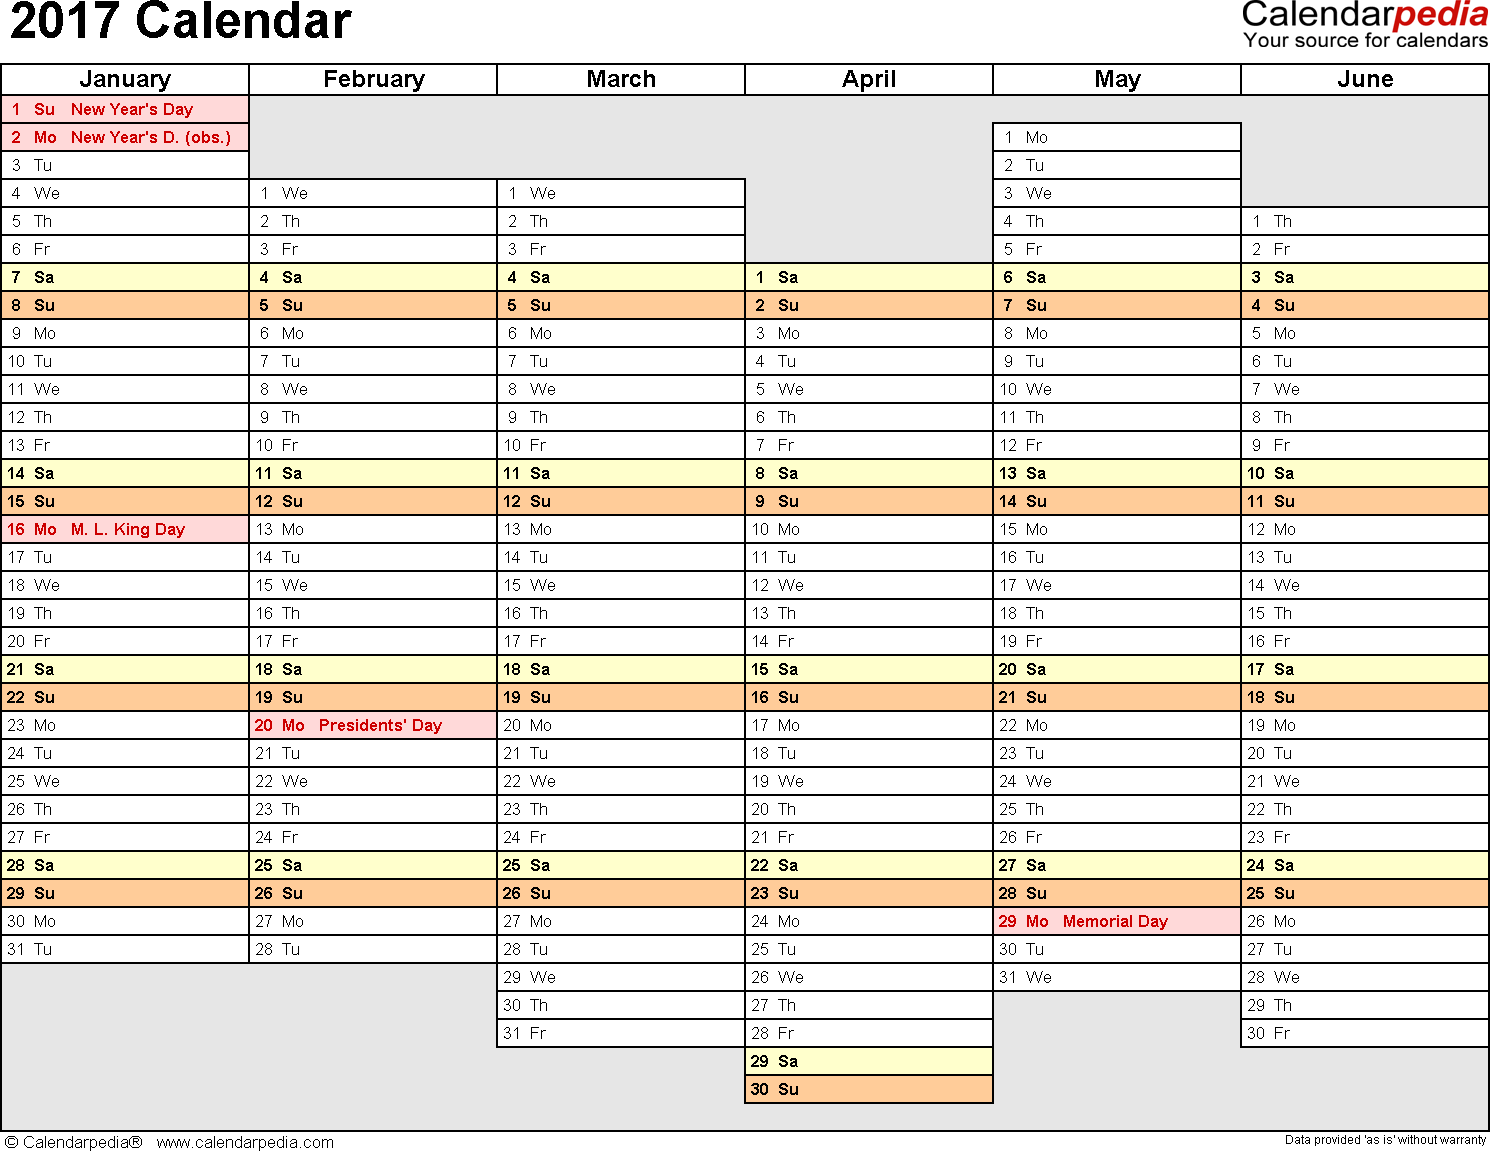 Template 6: 2017 Calendar for PDF, months horizontally, 2 pages, days of the week in line/linear, landscape orientation